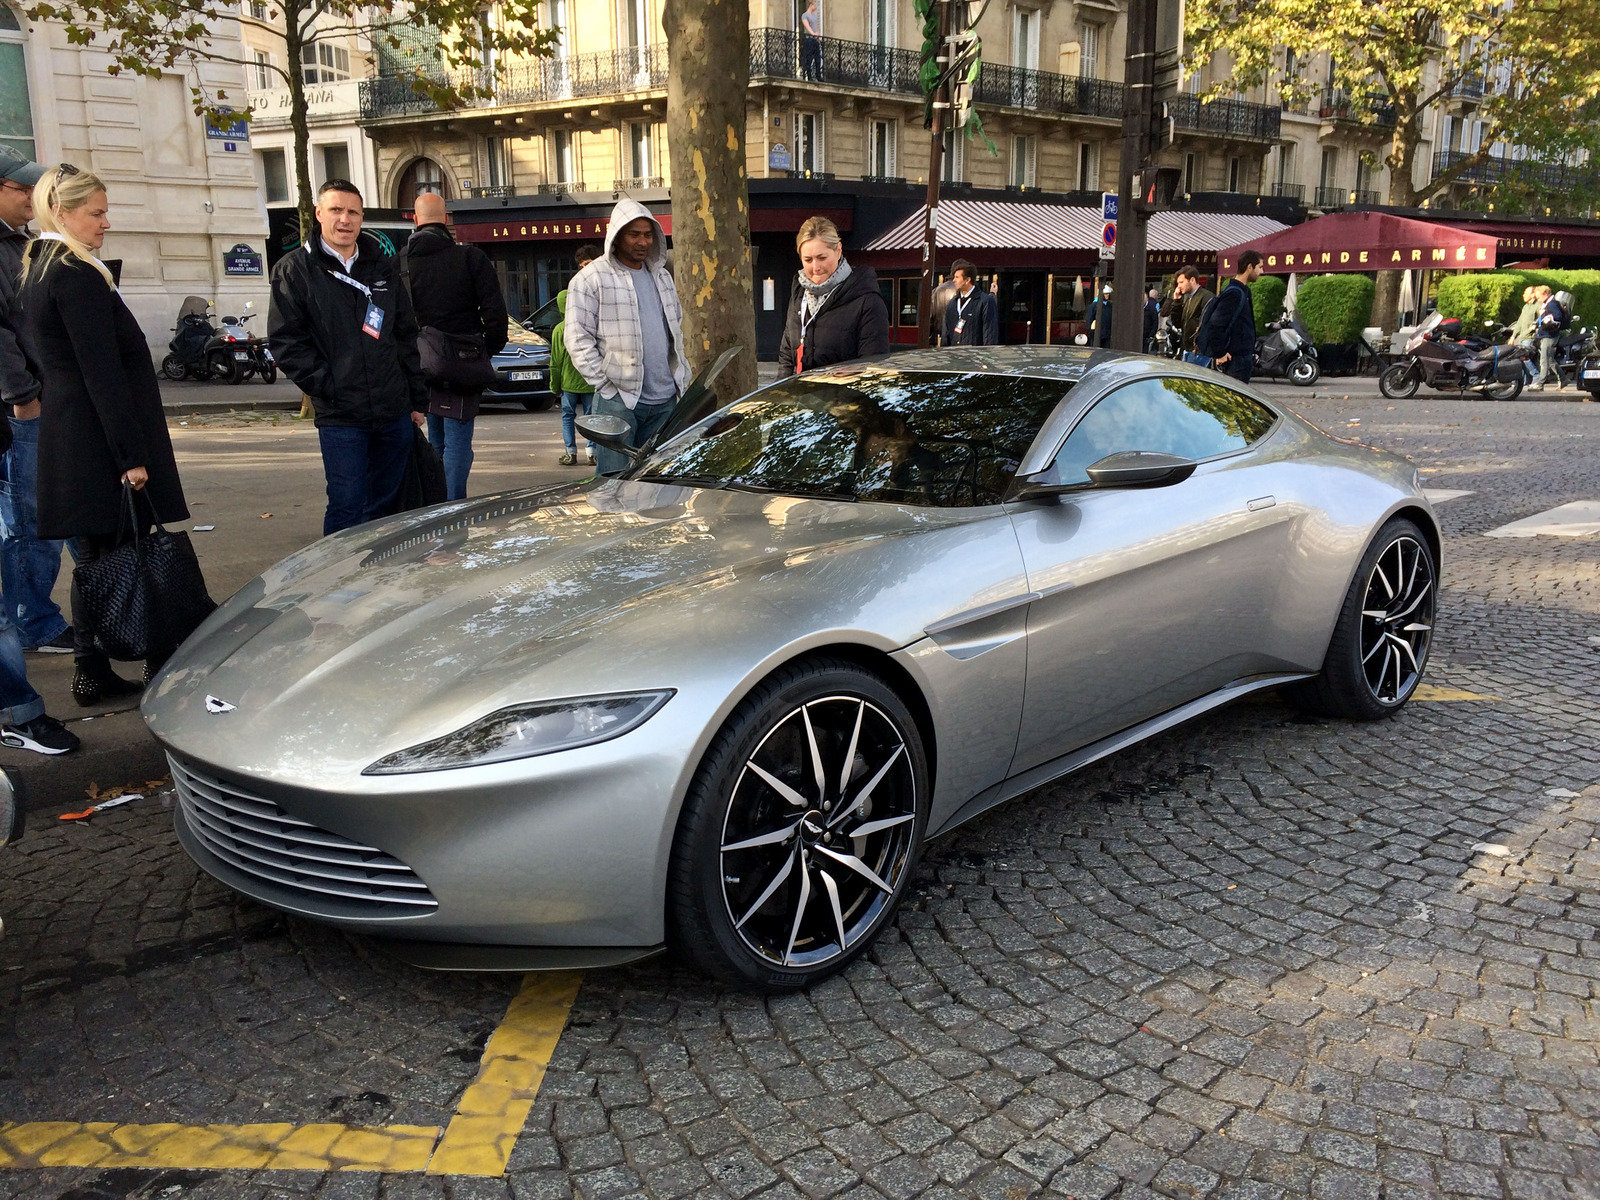 Aston Martin Db10 Wallpapers Vehicles Hq Aston Martin Db10 Pictures 4k Wallpapers 2019